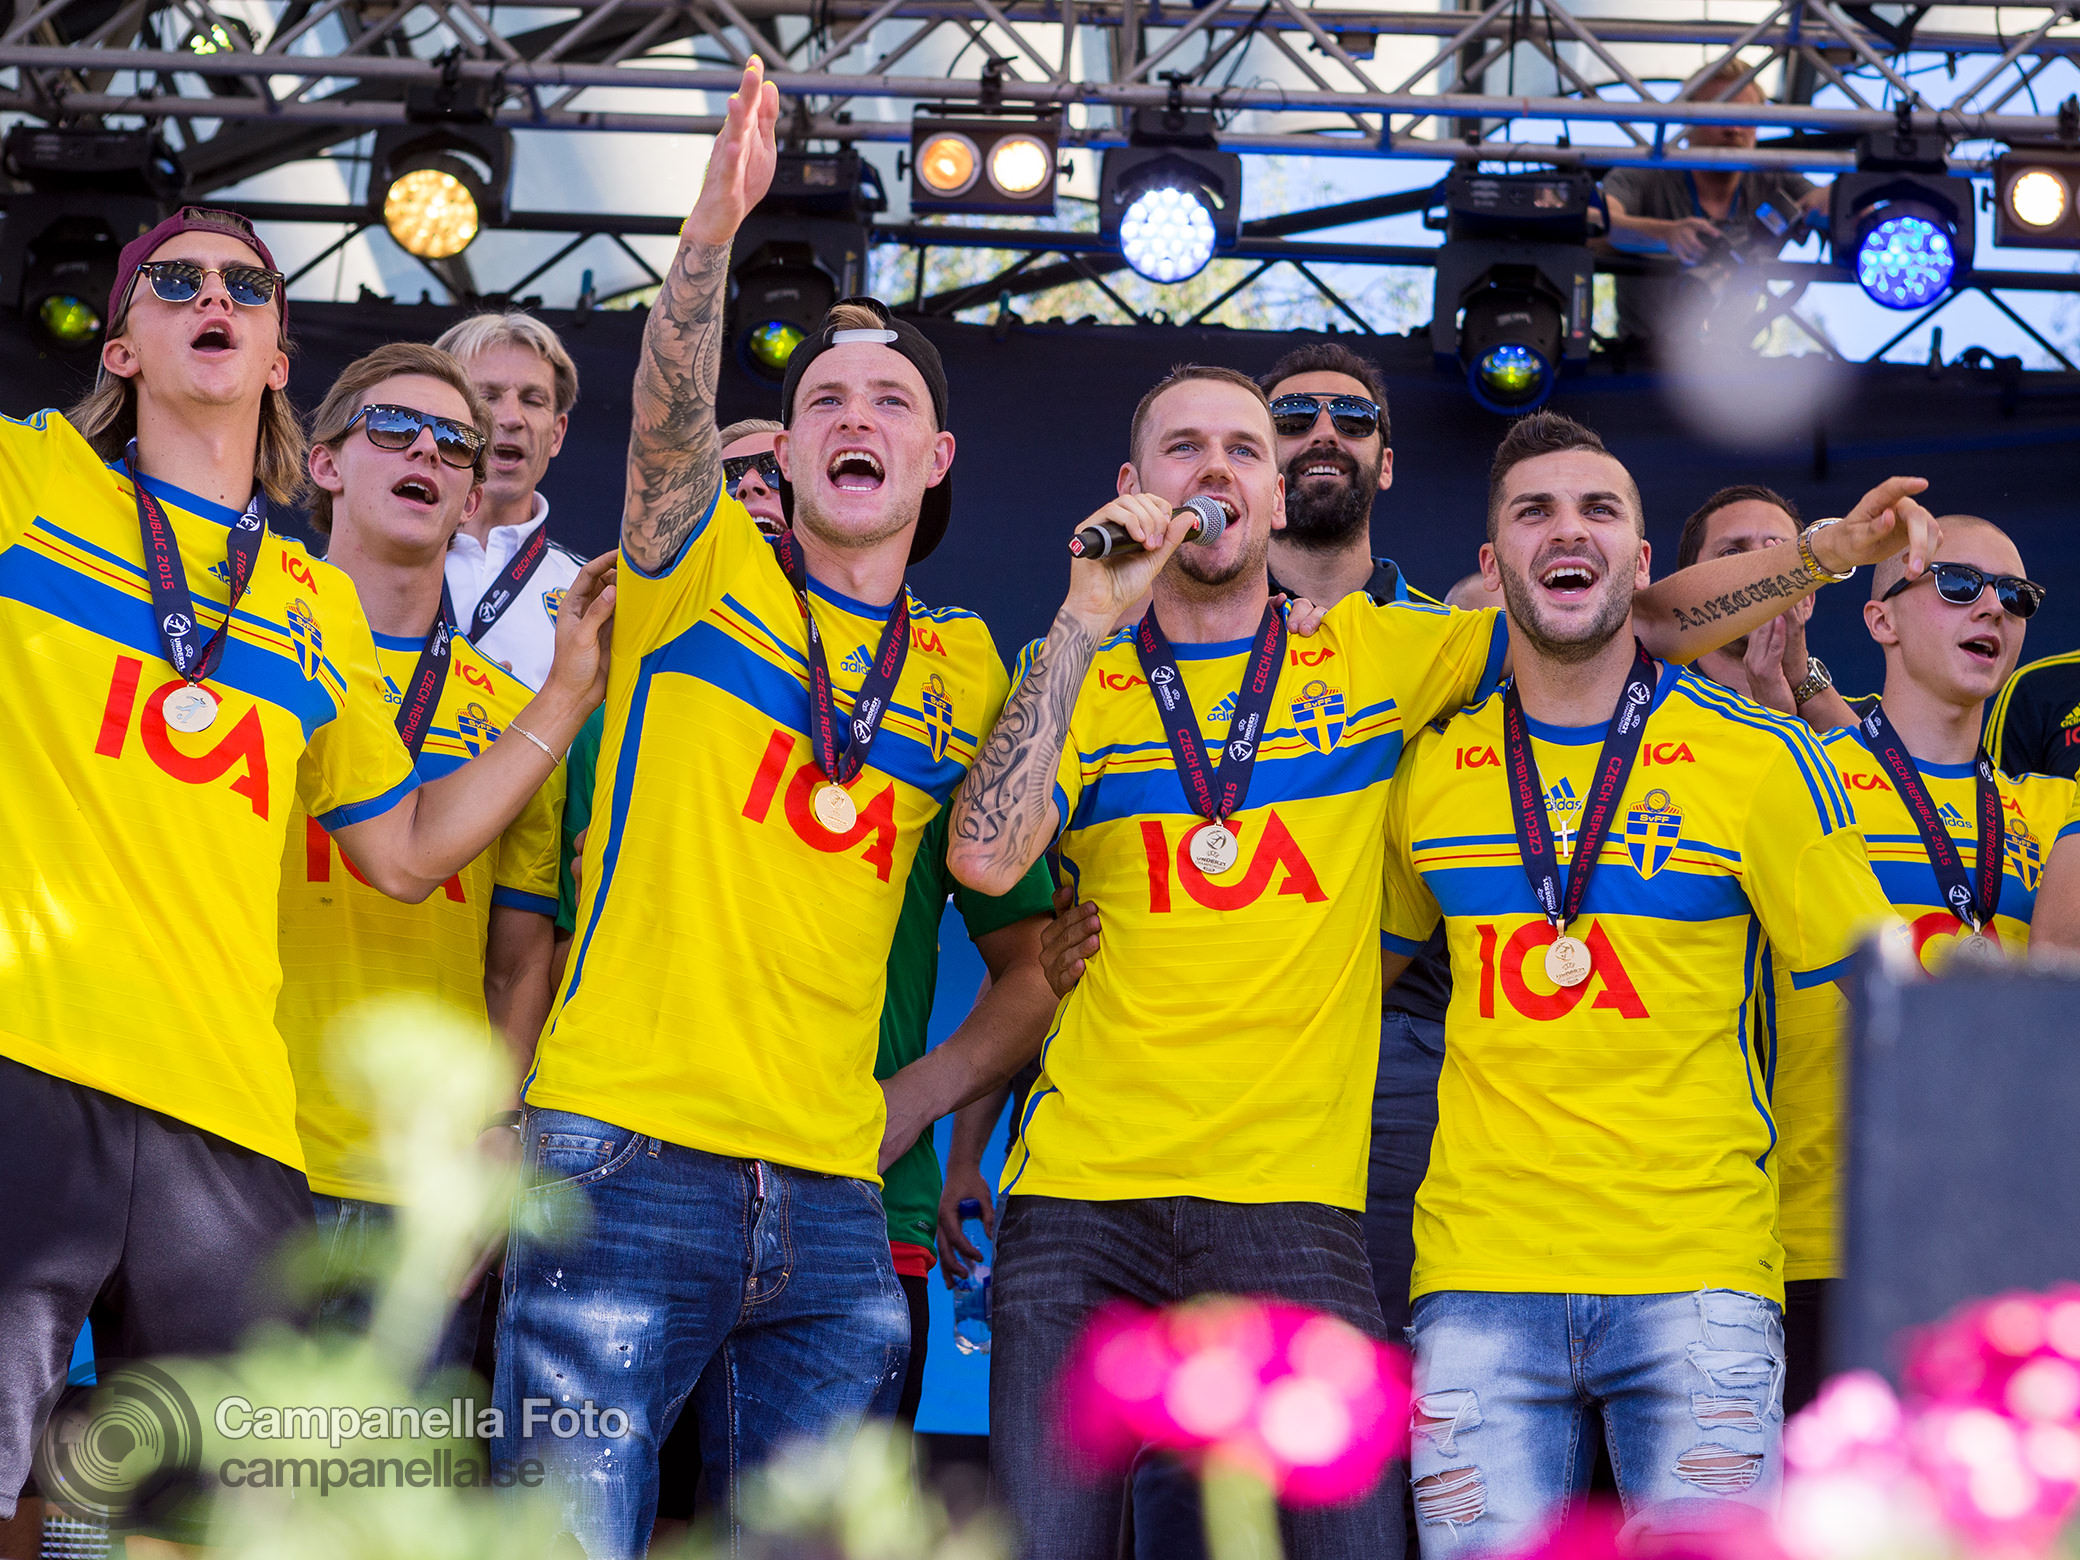 U-21 Euro Celebrations - Michael Campanella Photography